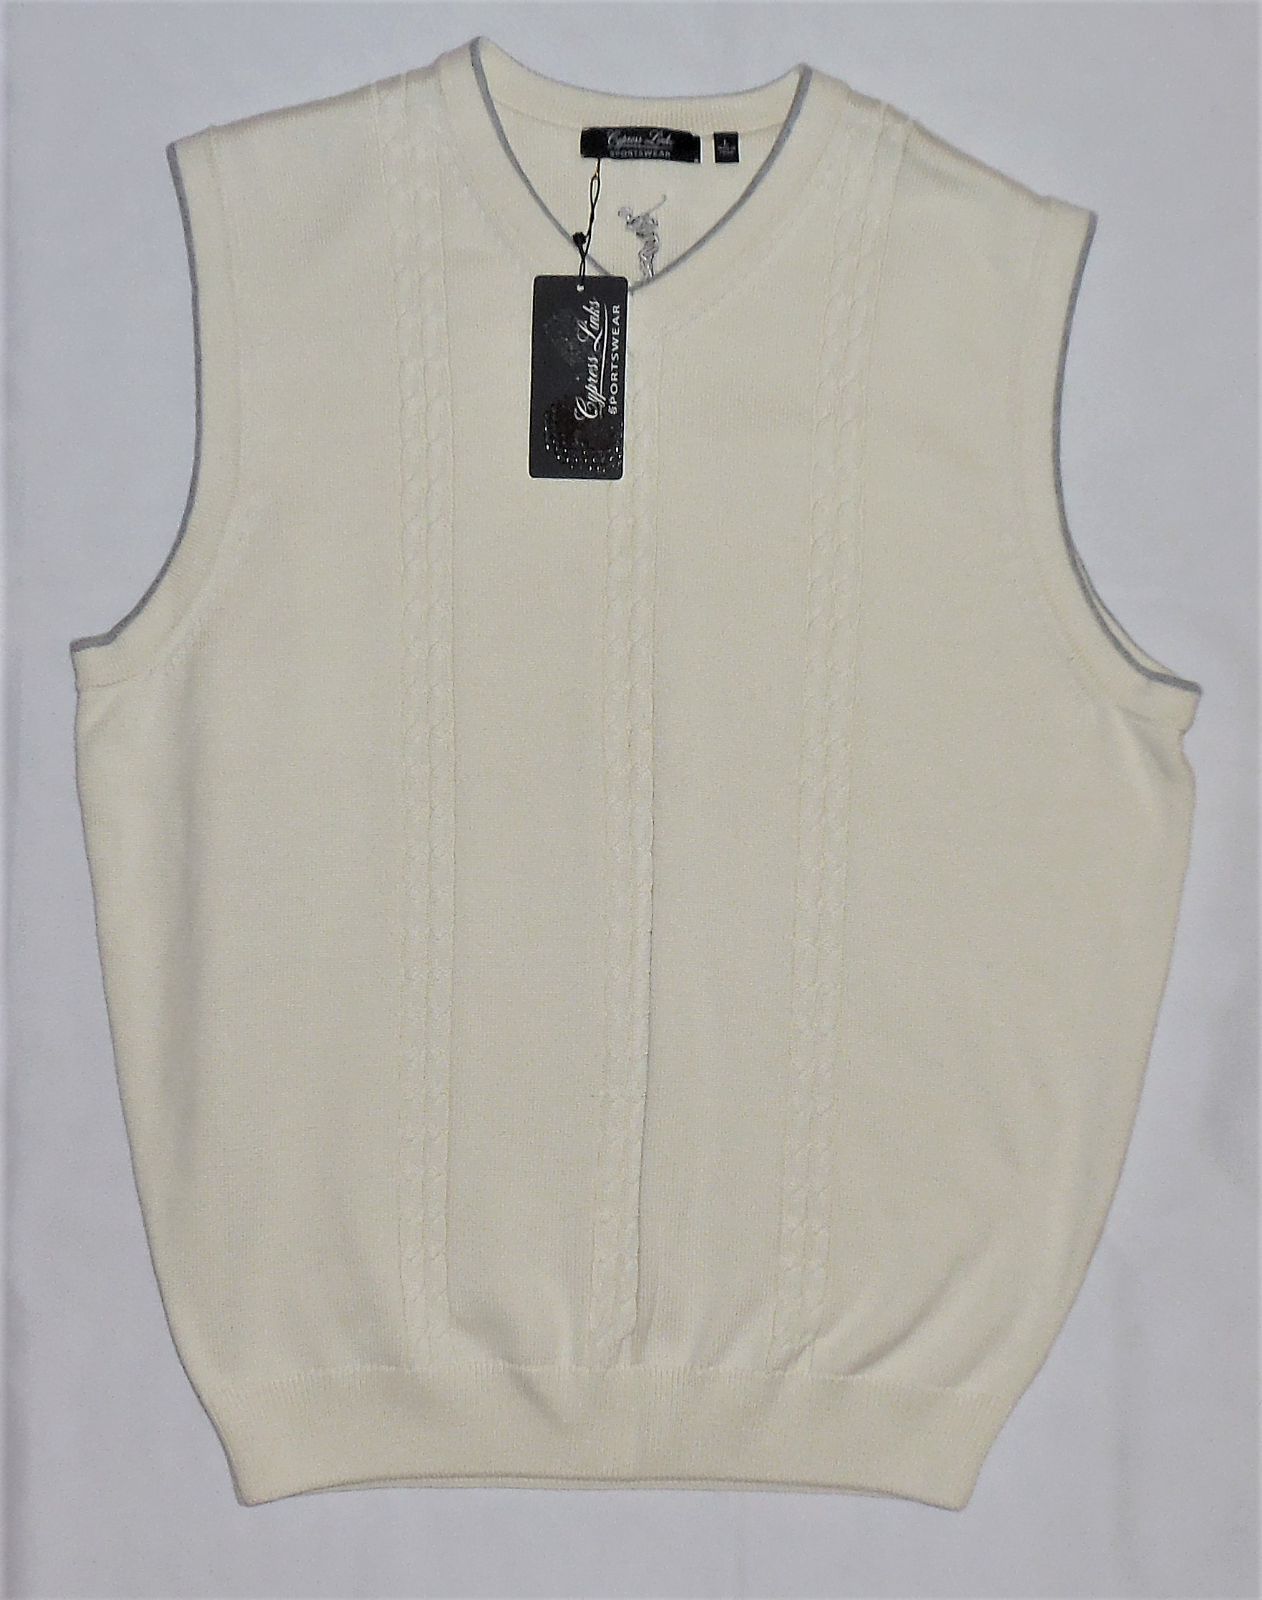 CYPRESS LINKS Cable Knit Cream Sweater Vest Large Golf Attire Sportswear LARGE image 7